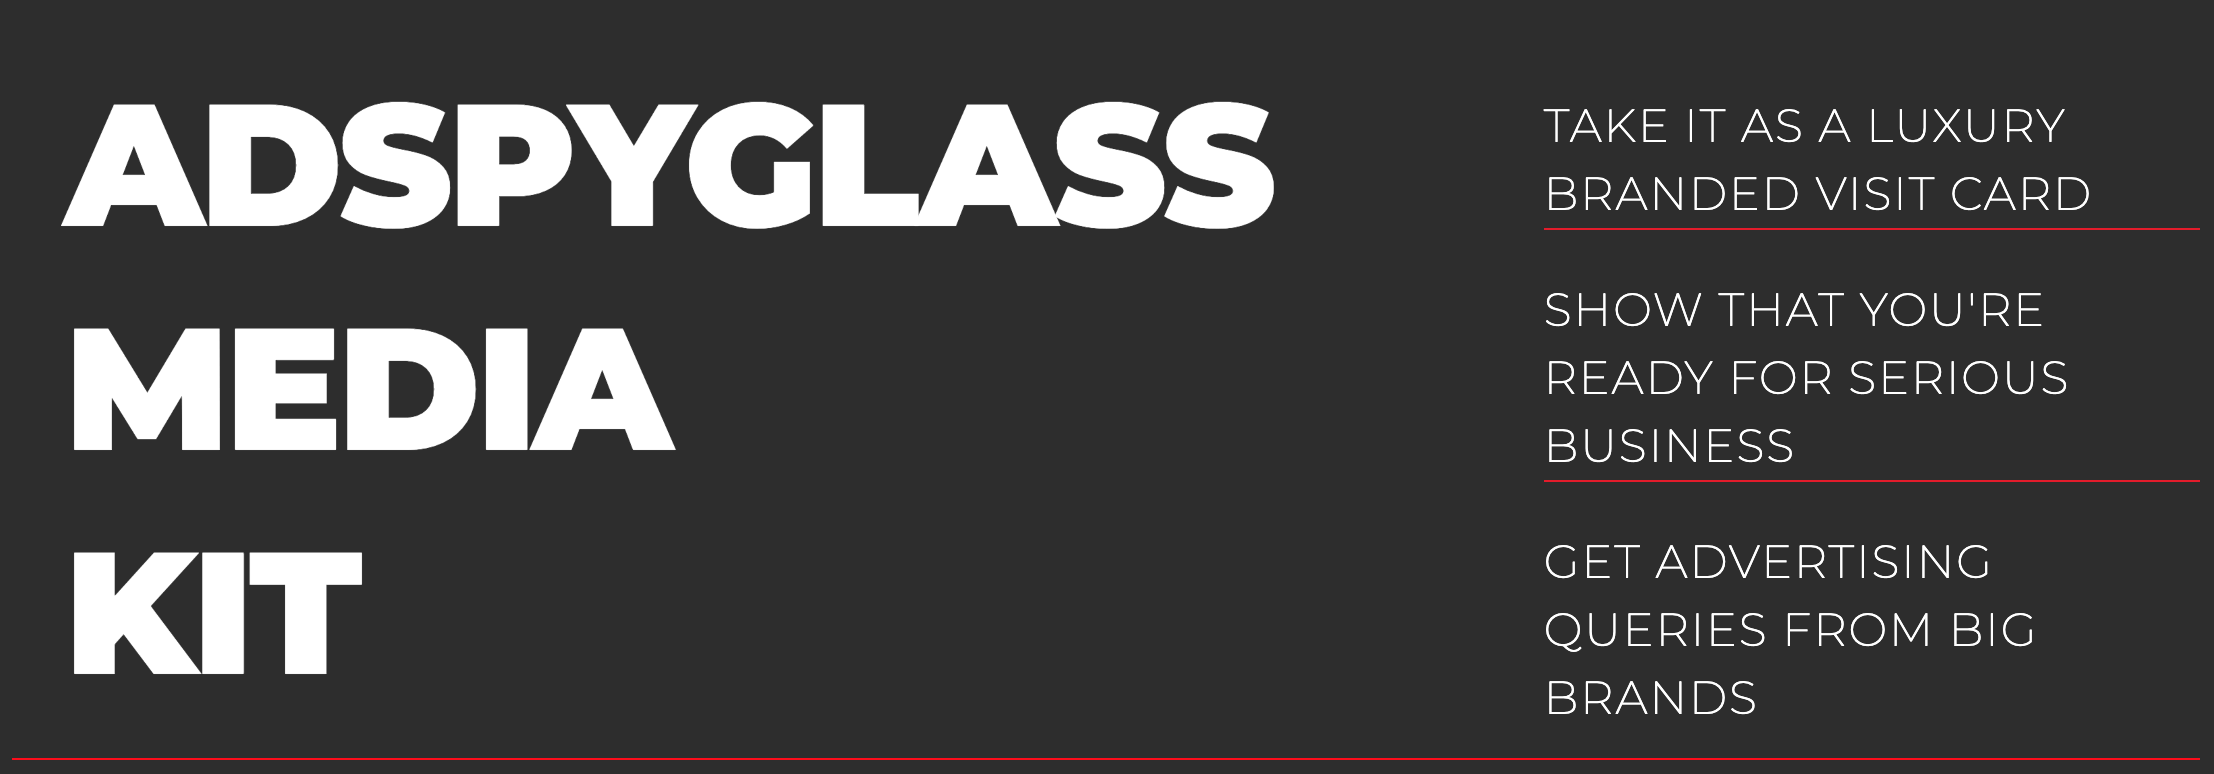 Adspyglass presents a new feature - AdSpyglass Media Kit Maker.  This tool will help you create well-structured, insightful, and beautiful media kits (like the one you've seen on a screenshot) just in a few clicks at no charge. And, the data shown on these media kits is updating dynamically.